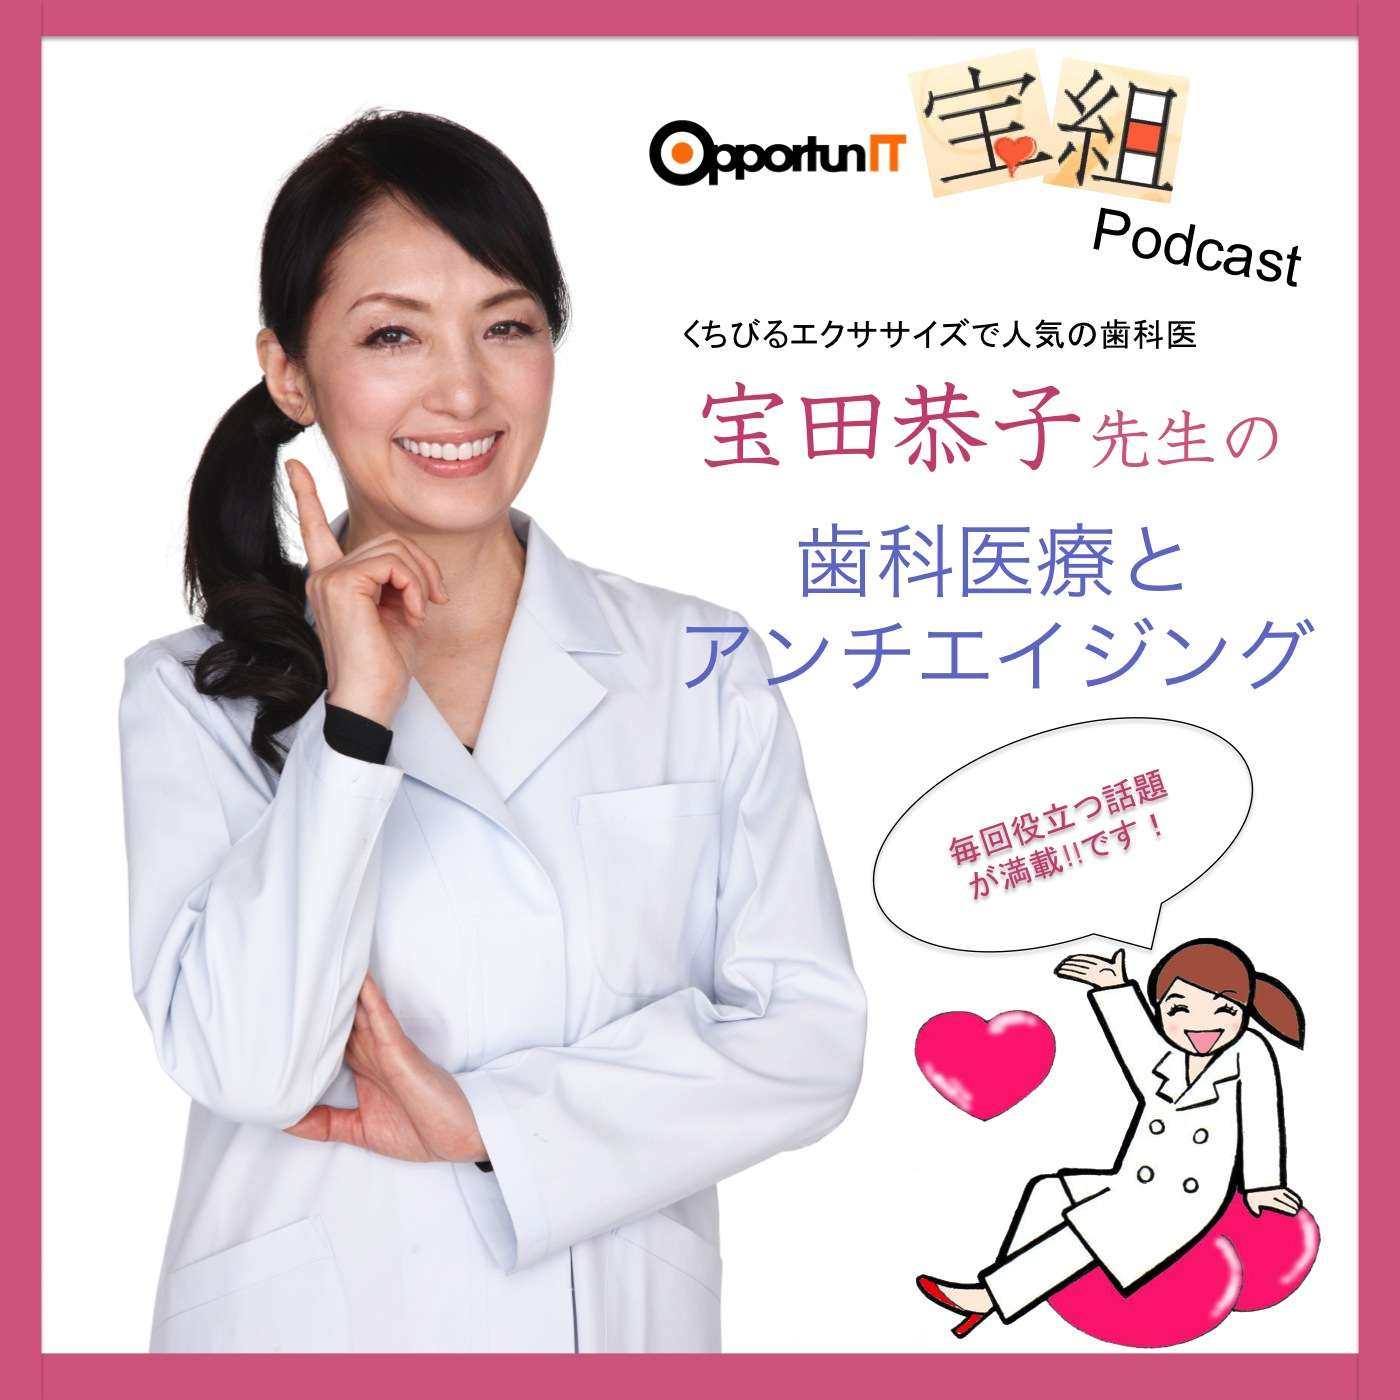 OpportunIT 宝組 Podcast